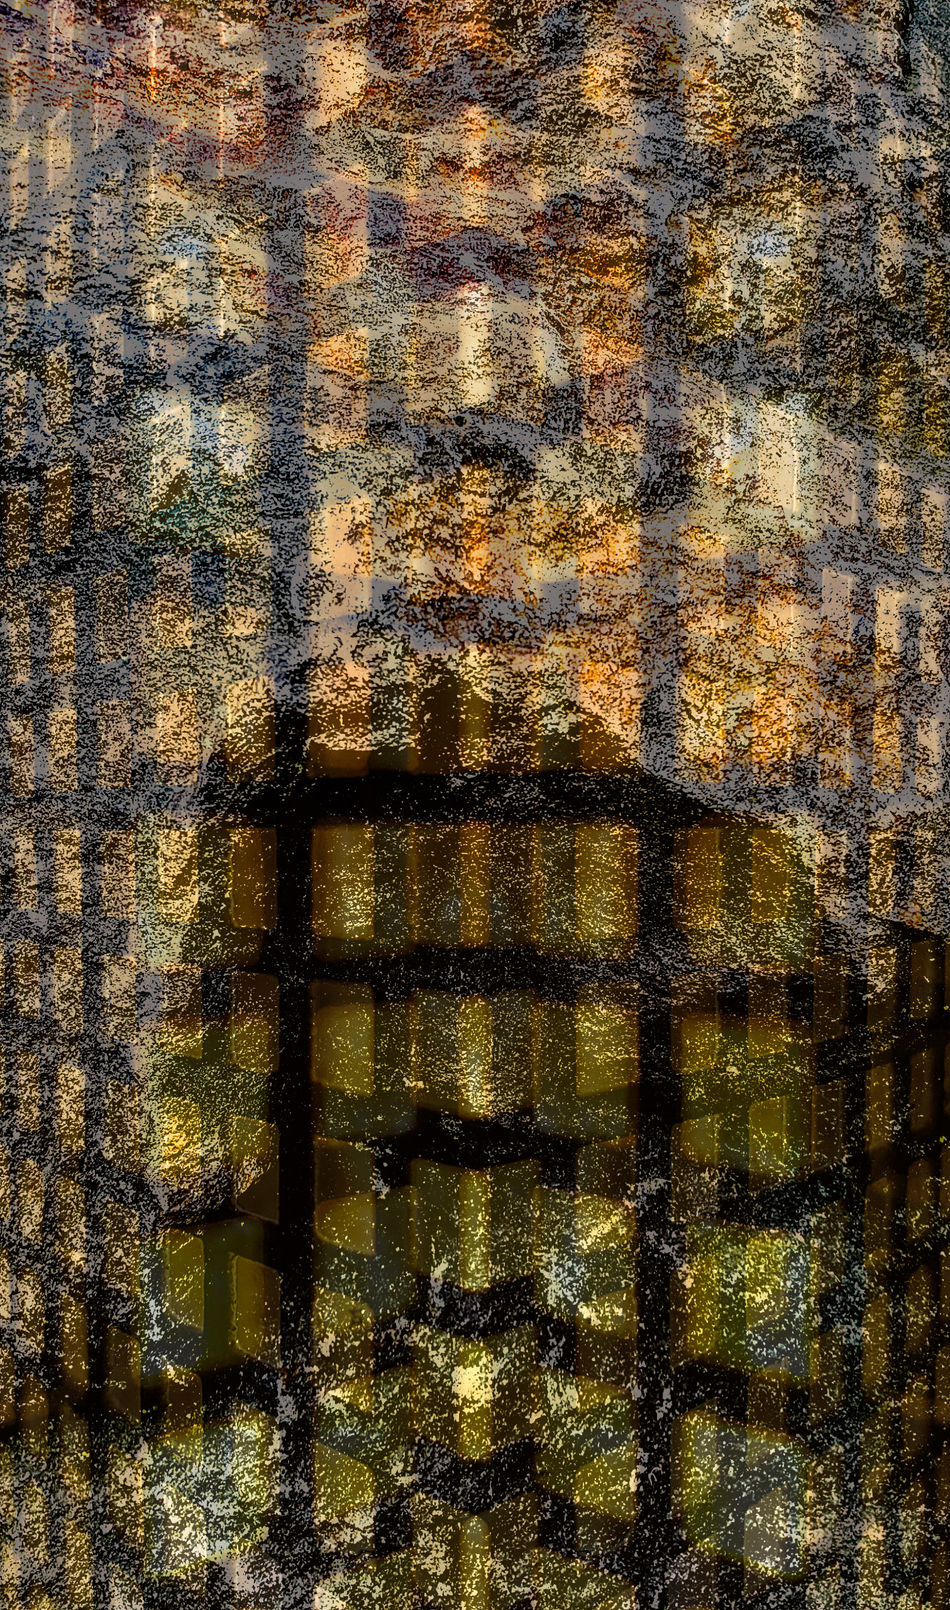 Layered Photos Artistic Expression Artistic Freedom Beauty Redefined Shaping Thoughts Artistic Photography Artistic Photo Today's Hot Look EyeEm Best Edits Textures And Surfaces Textures And Patterns Background Taking Photos Abstract Artistic EyeCreative Power Mixing Photos Abstract Art Darryn Doyle Eye4photography  Check This Out Cut And Paste